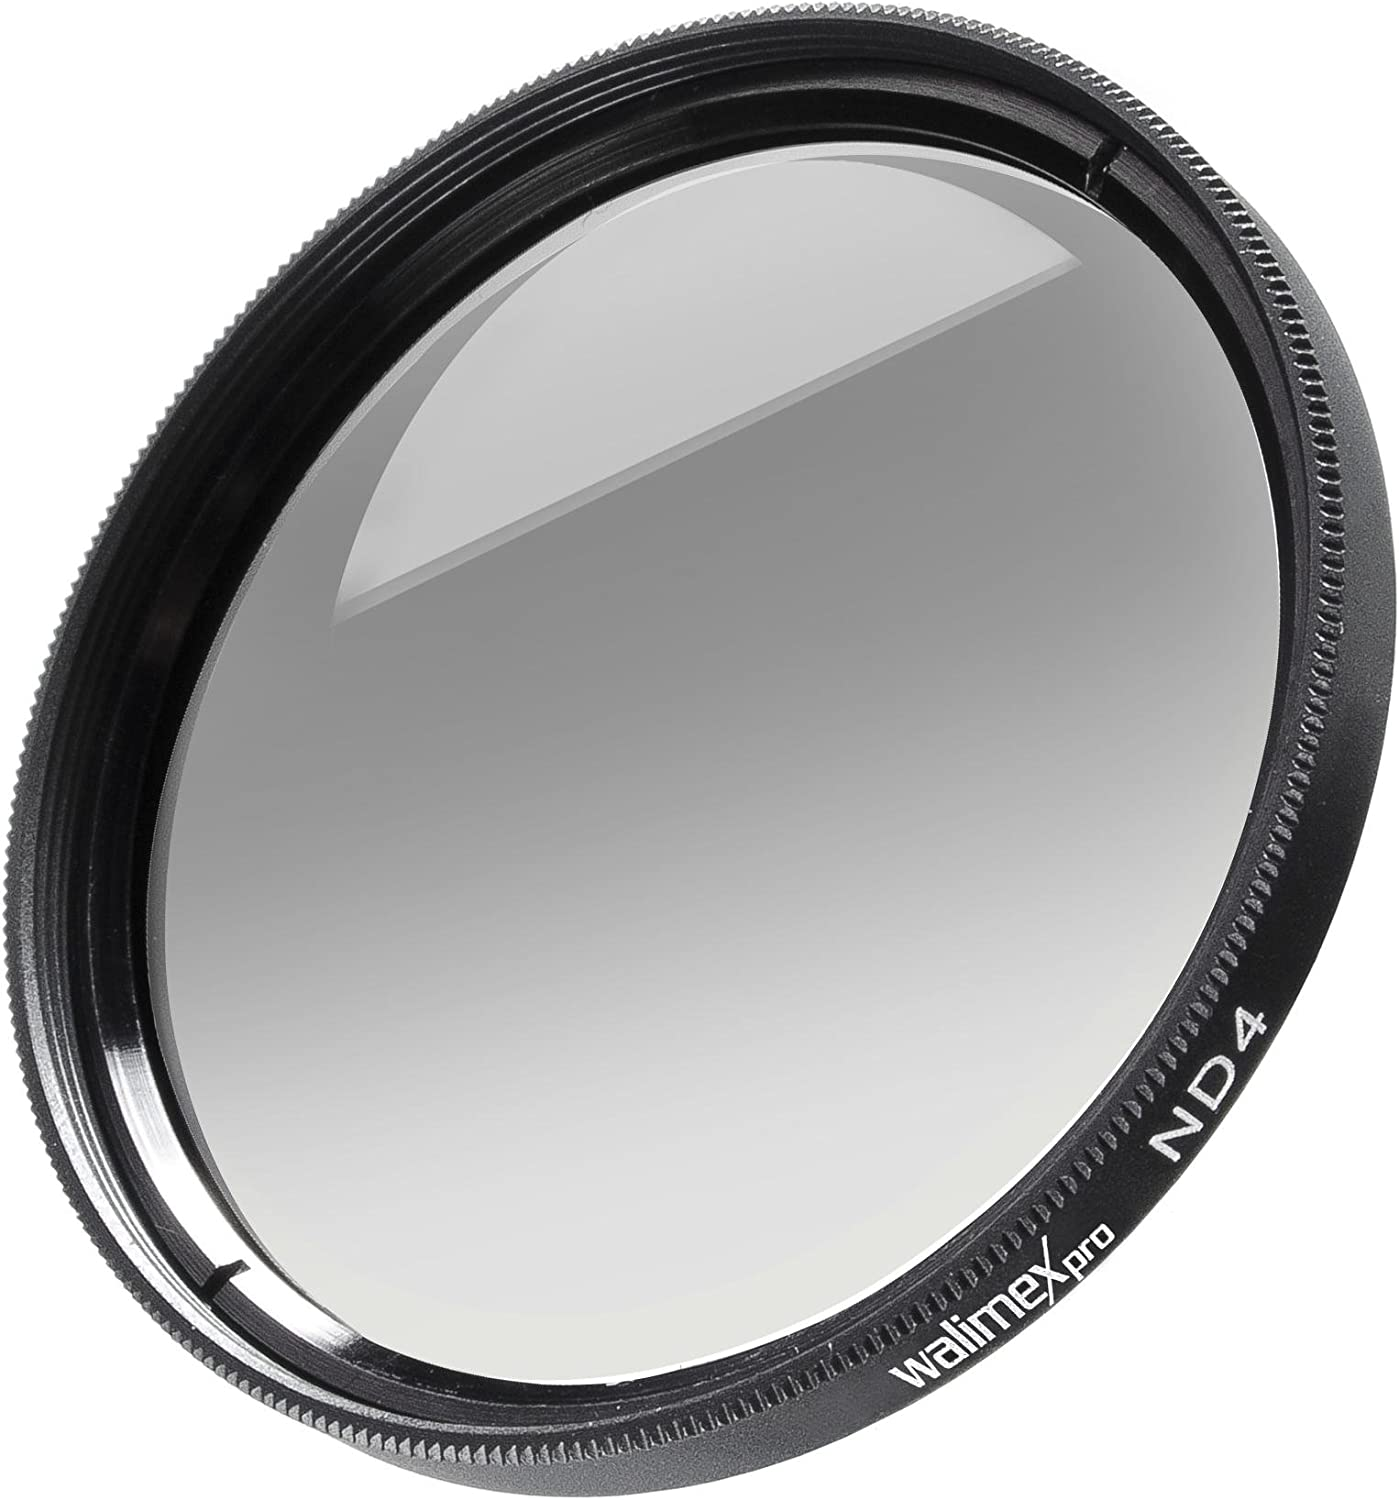 Grey walimex 46 mm ND4 Neutral Density Filter for Camera